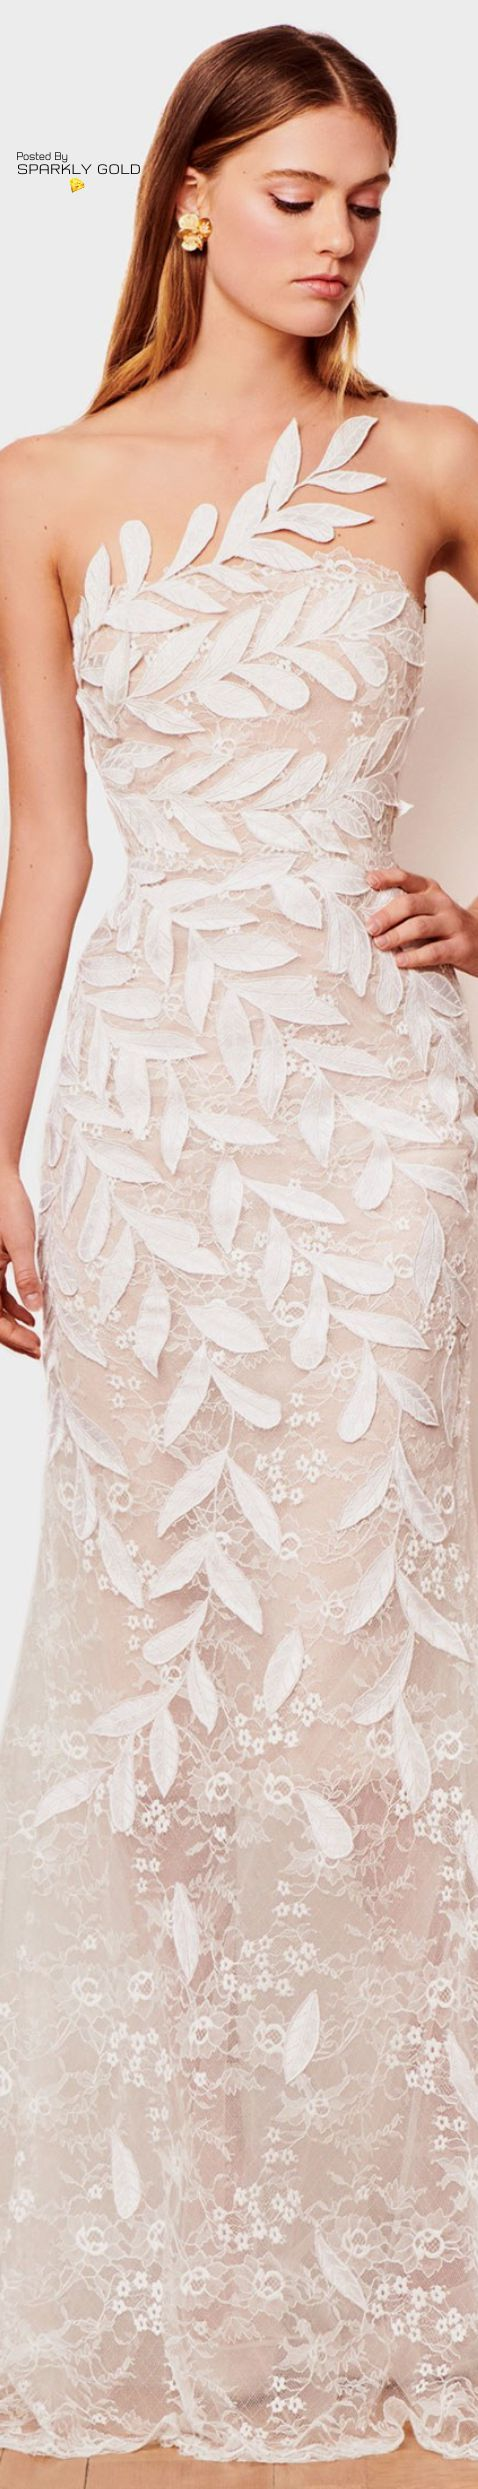 Oscar de la renta fall bridal night dress pinterest